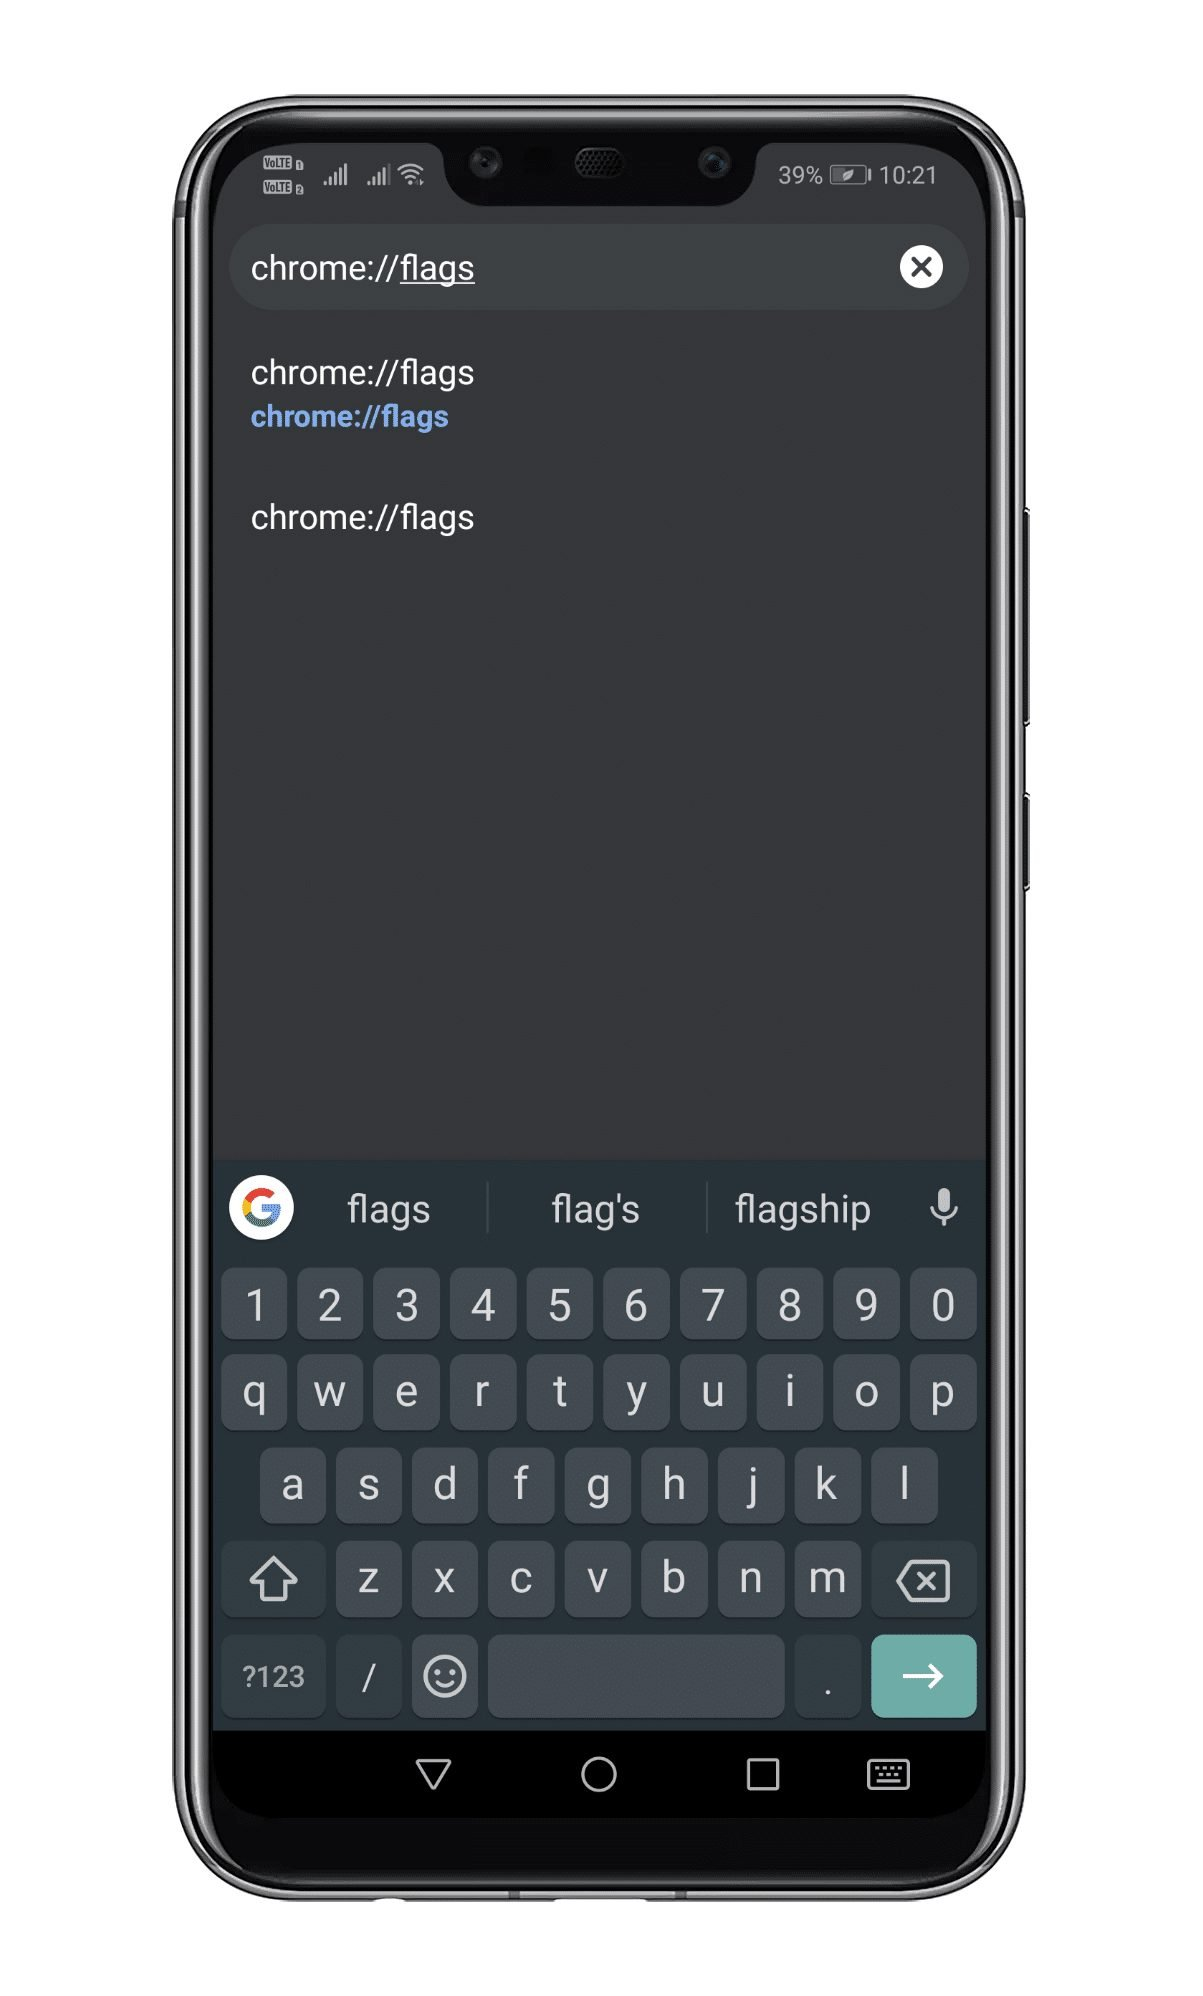 Type in 'Chrome://flags'